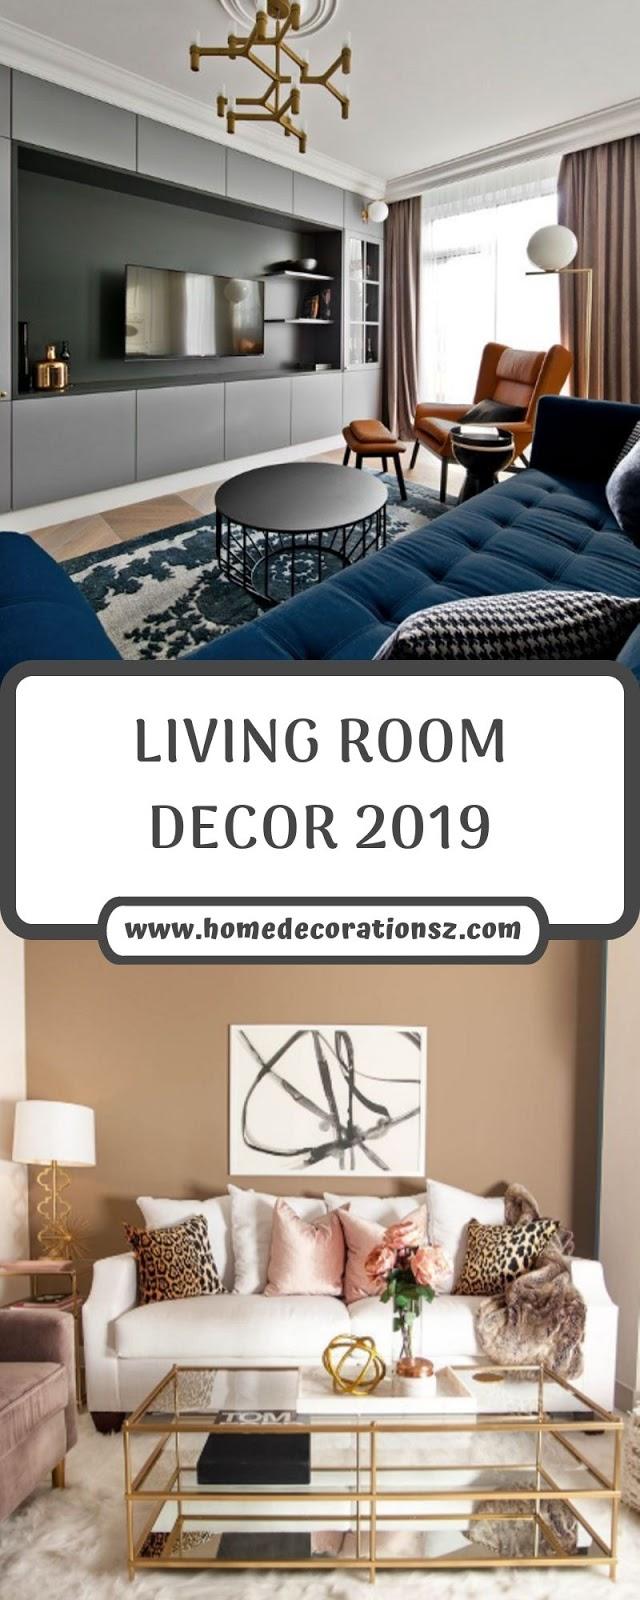 LIVING ROOM DECOR 2019